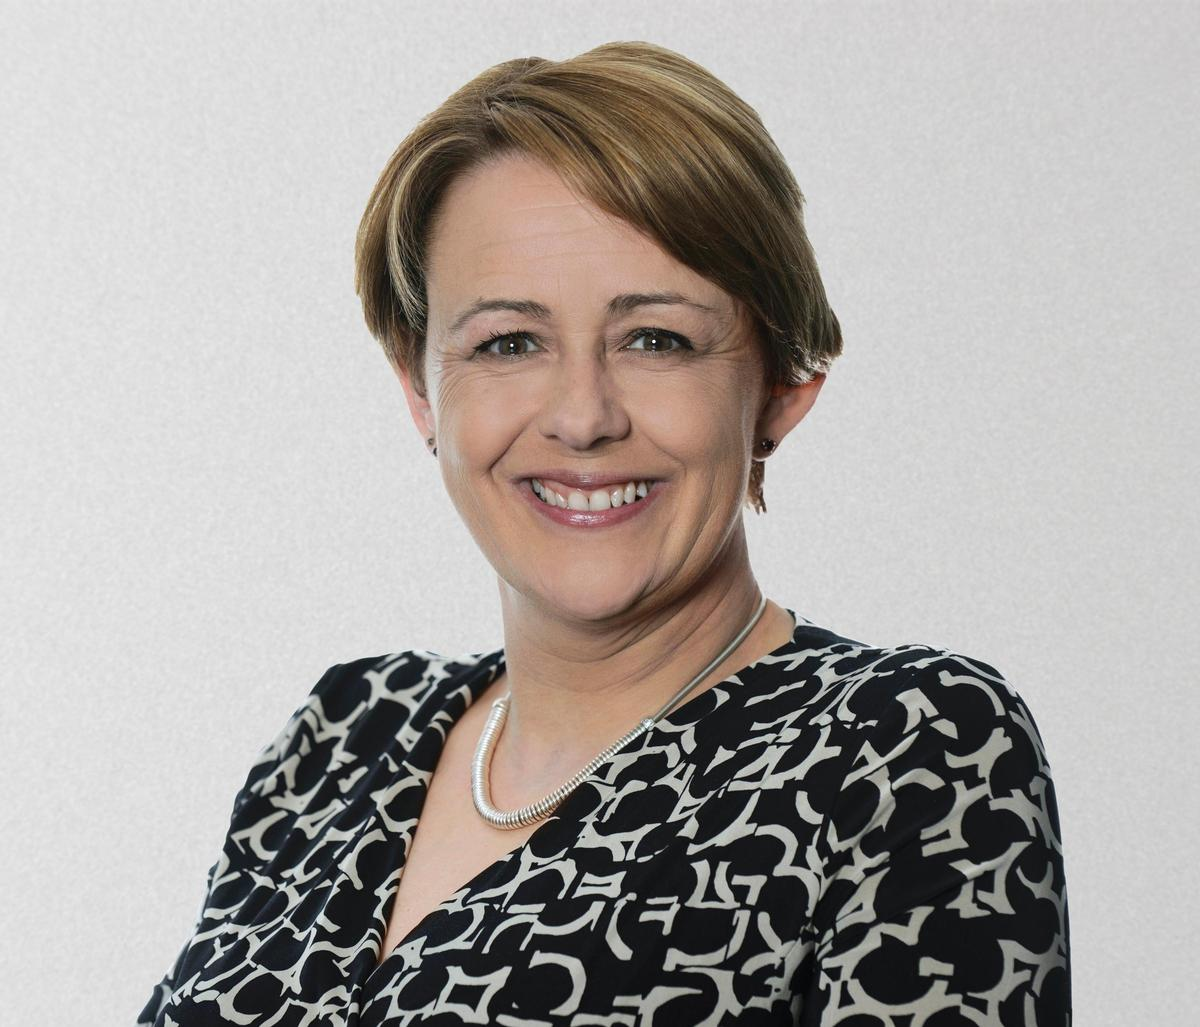 Tanni Grey-Thompson used her keynote speech at ukactive's National Summit to call for urgent action to combat the physical inactivity crisis